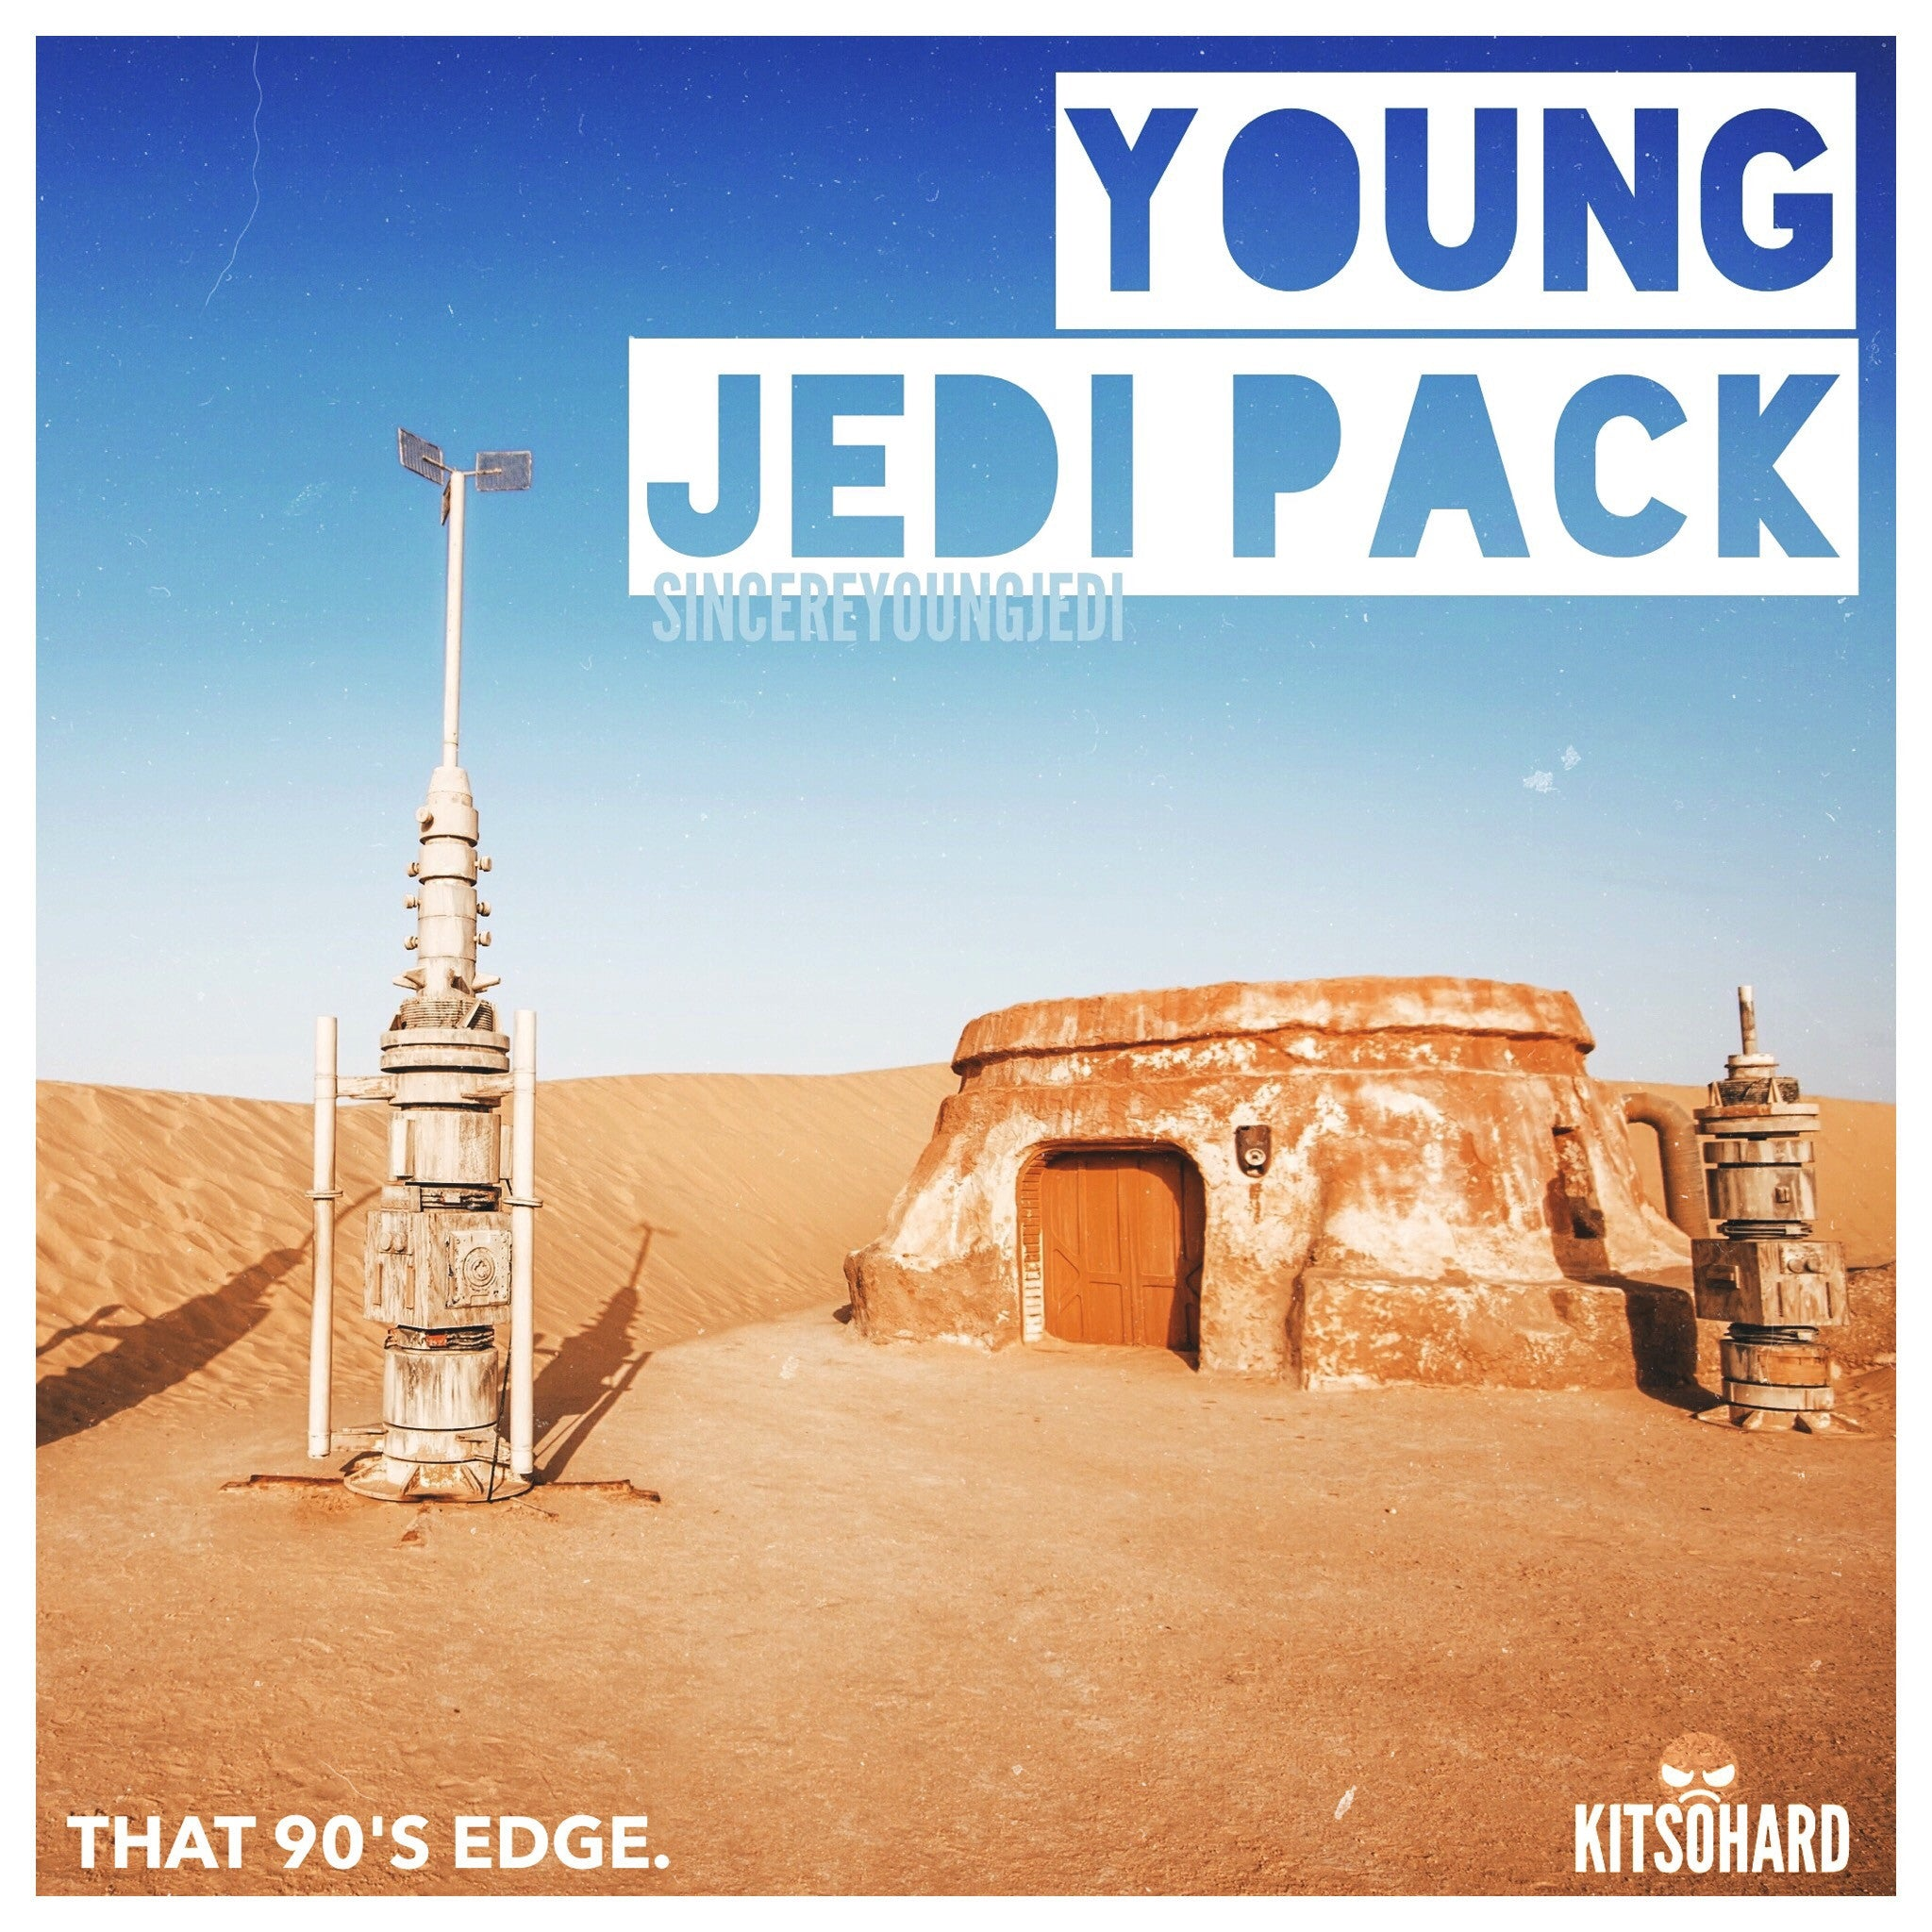 Young Jedi Pack